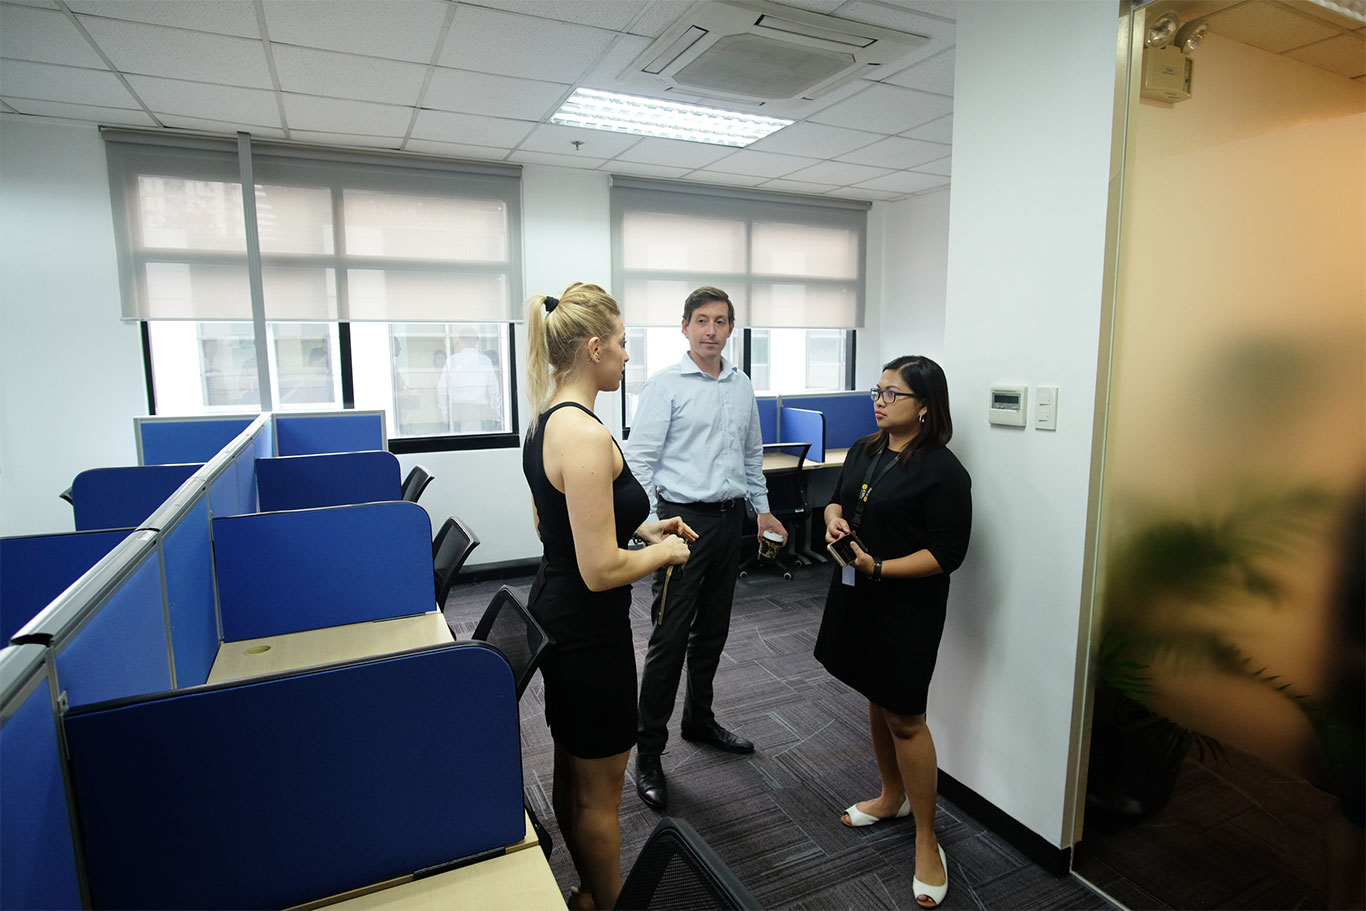 KMC Private office for rent at Picadilly Star, BGC, Taguig, Manila, Philippines - EpicSpace